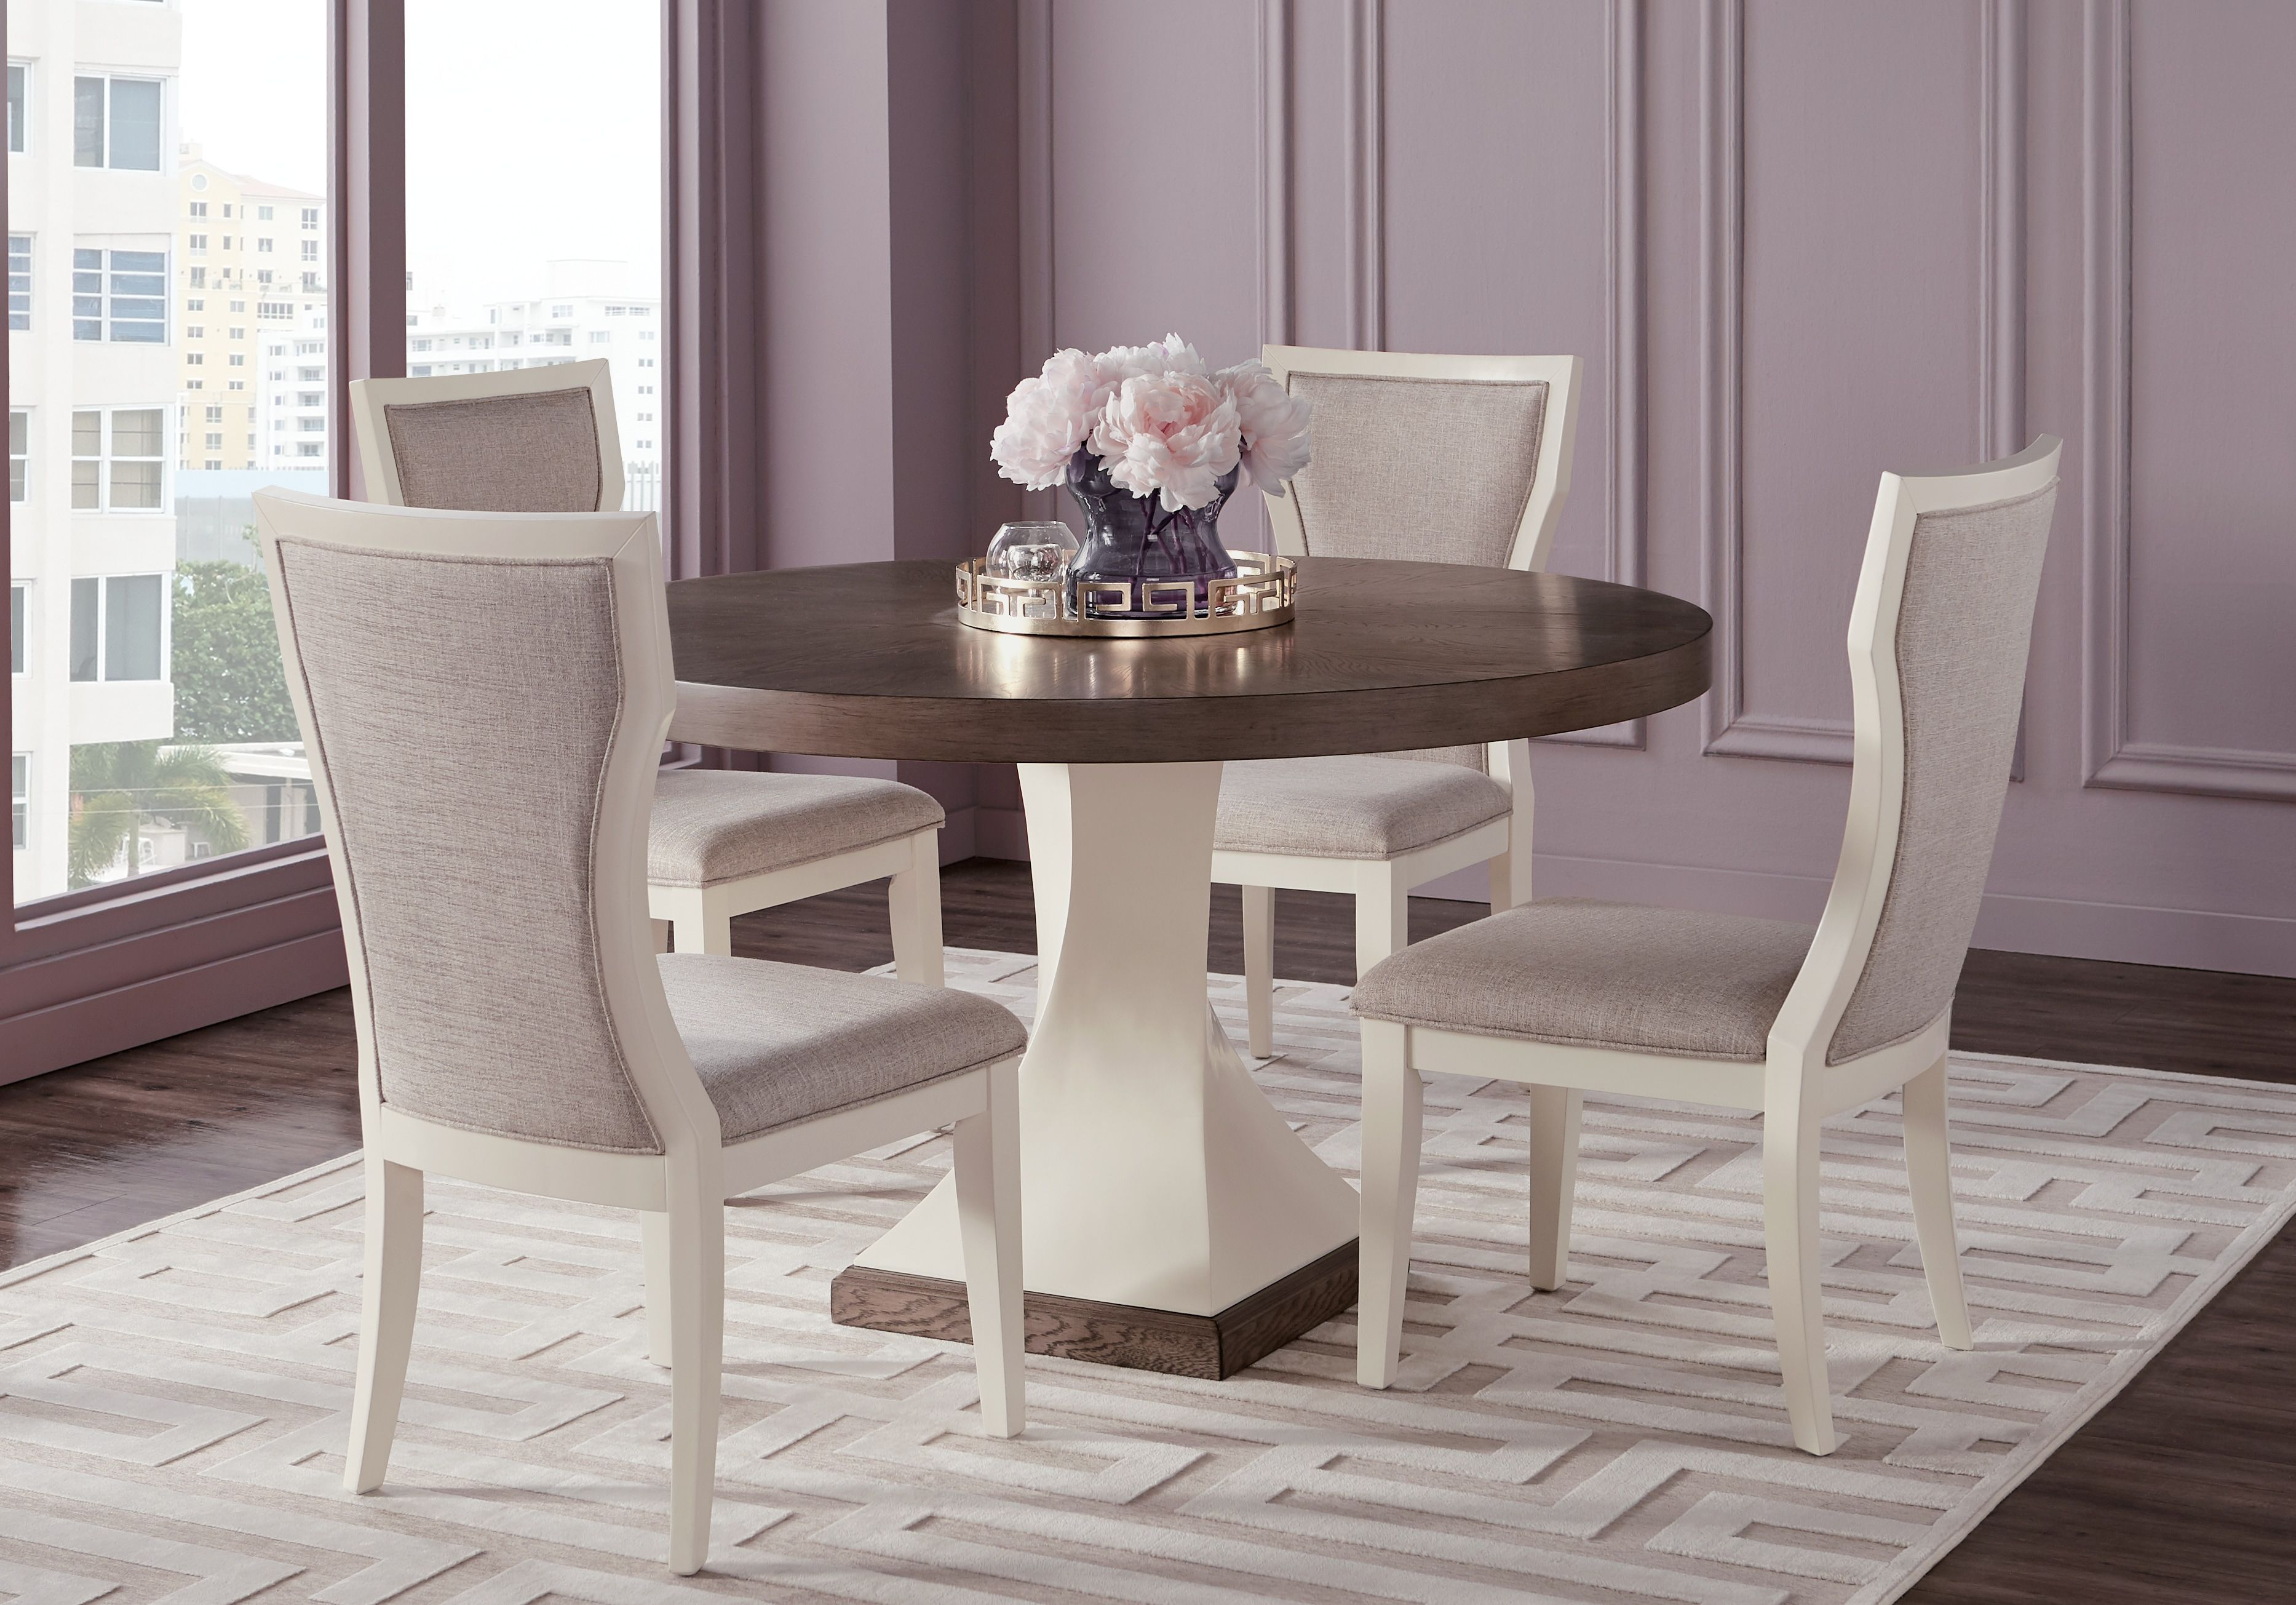 Sofia Vergara Santa Fiora White 5 Pc Round Dining Room In 2019 With 2017 Lamotte 5 Piece Dining Sets (View 16 of 20)